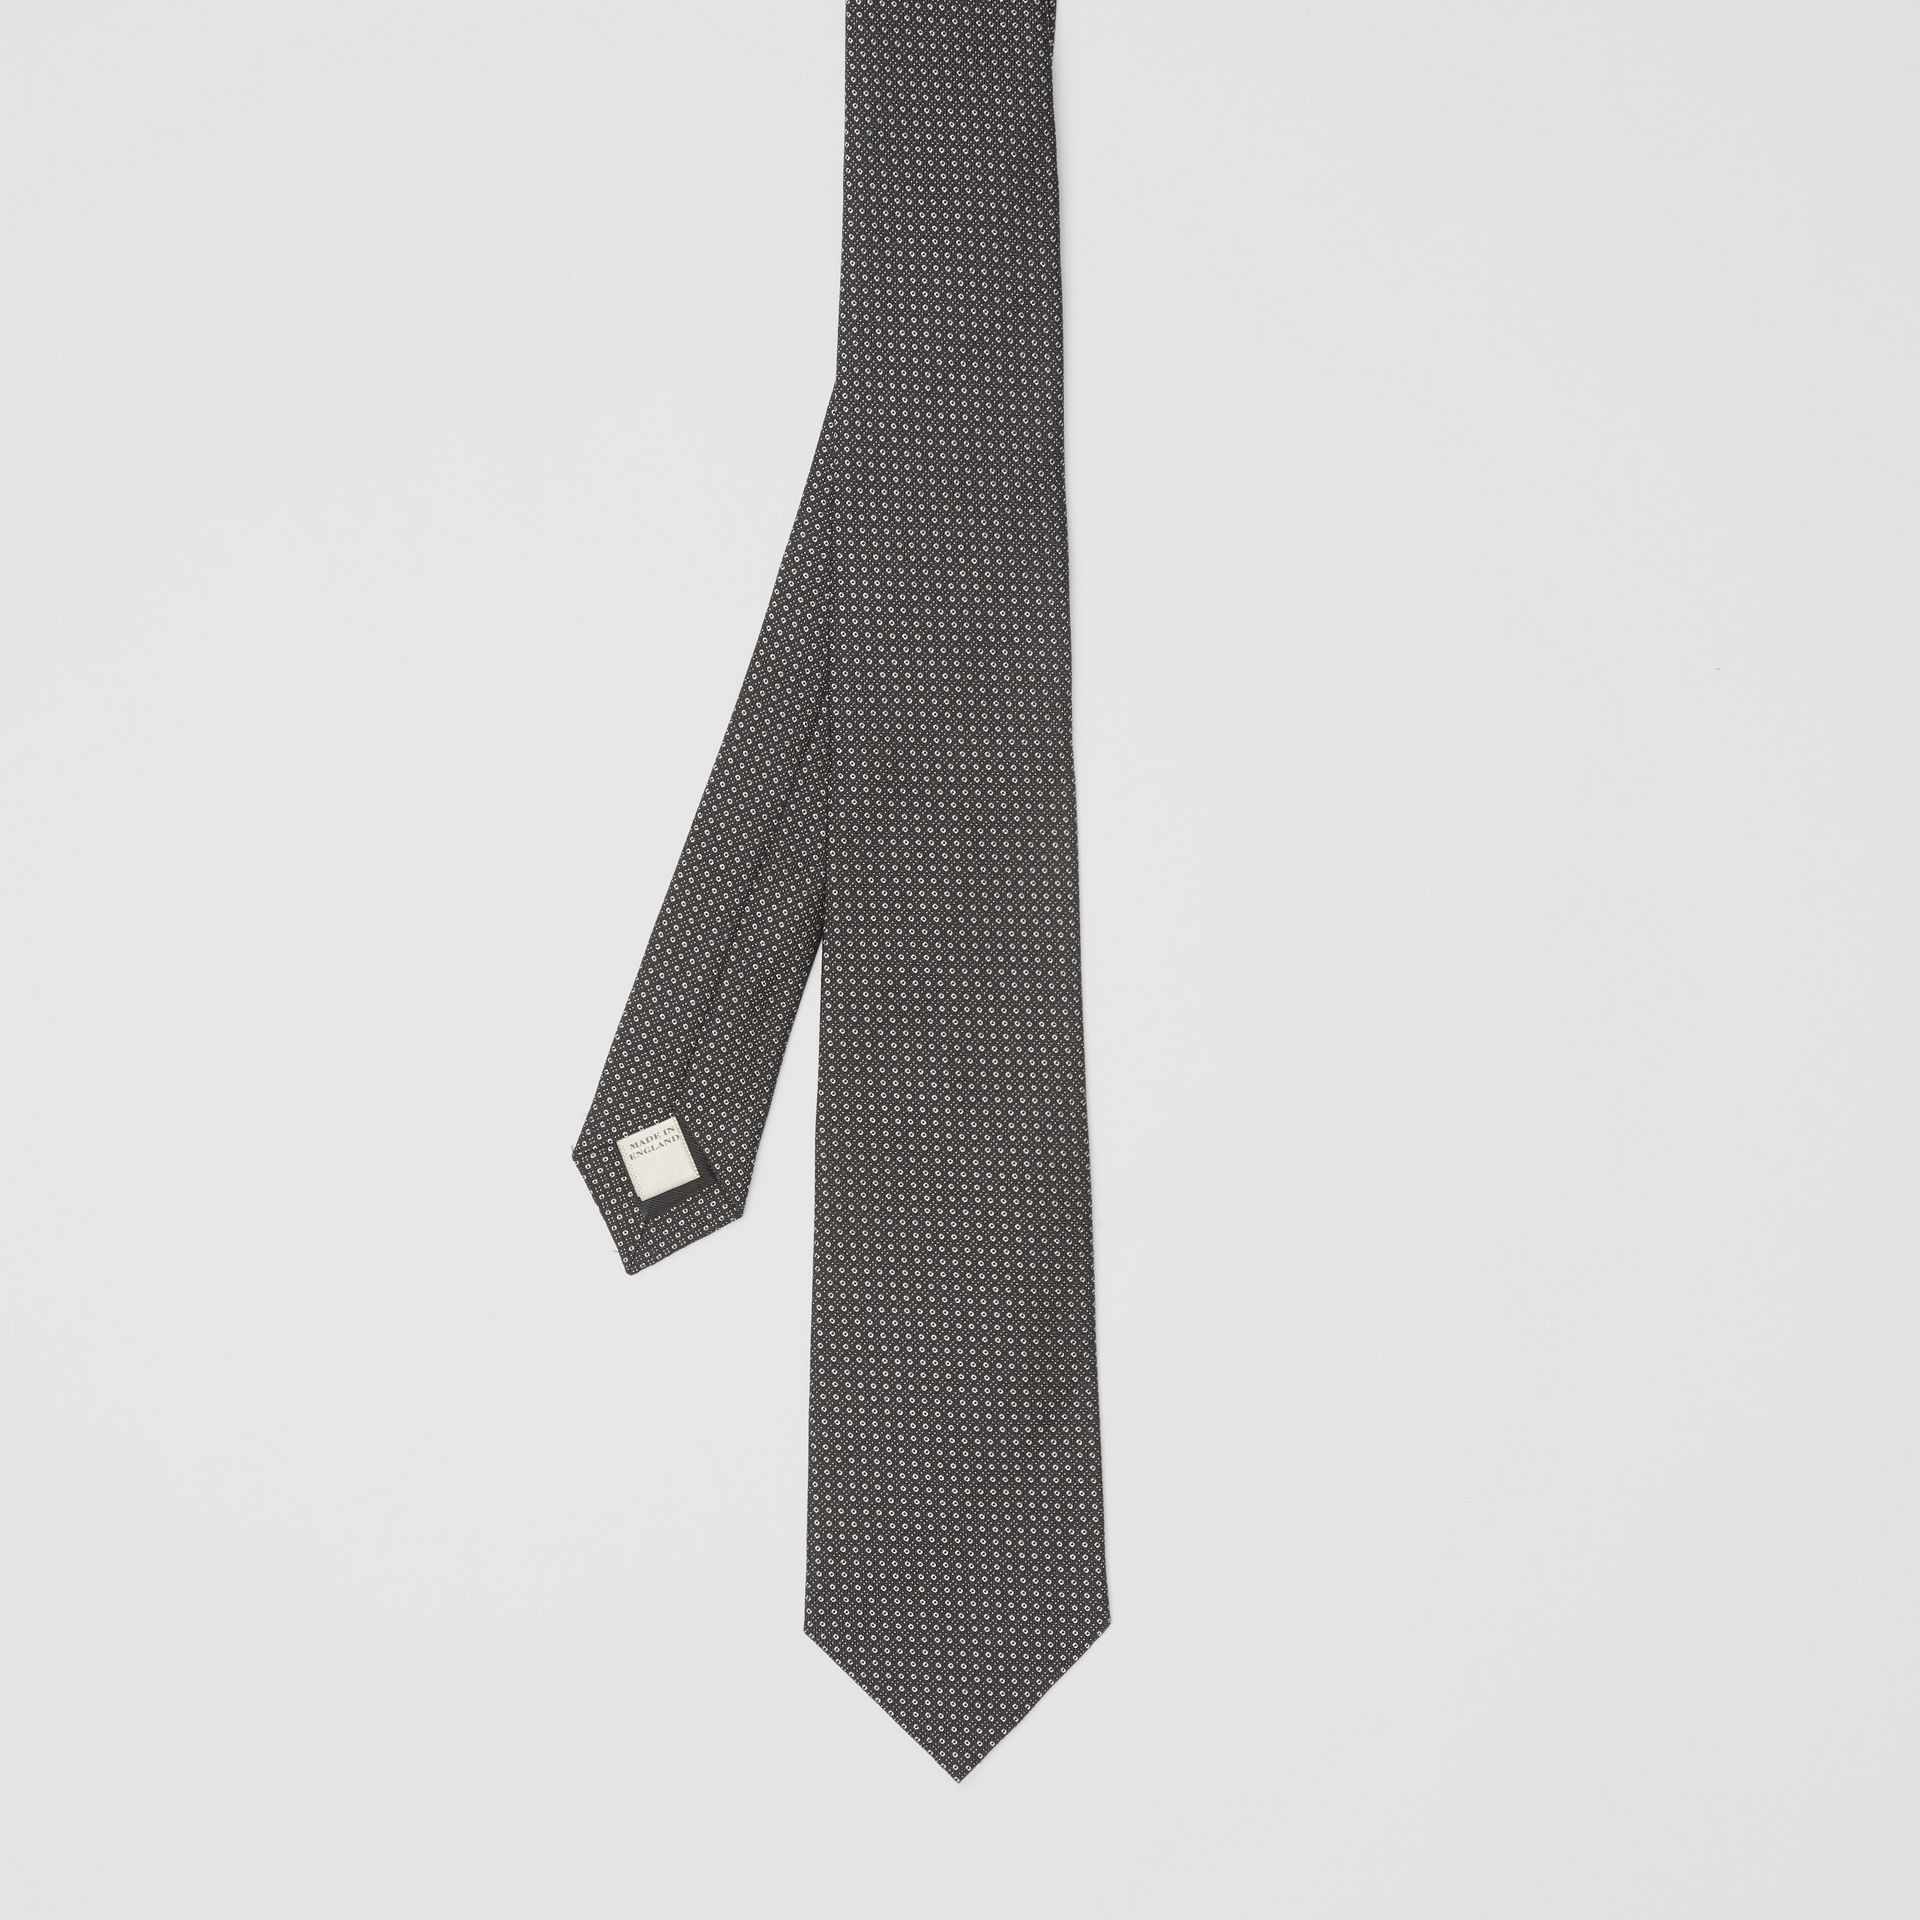 Classic Cut Micro Dot Silk Jacquard Tie in Black - Men | Burberry United Kingdom - gallery image 4